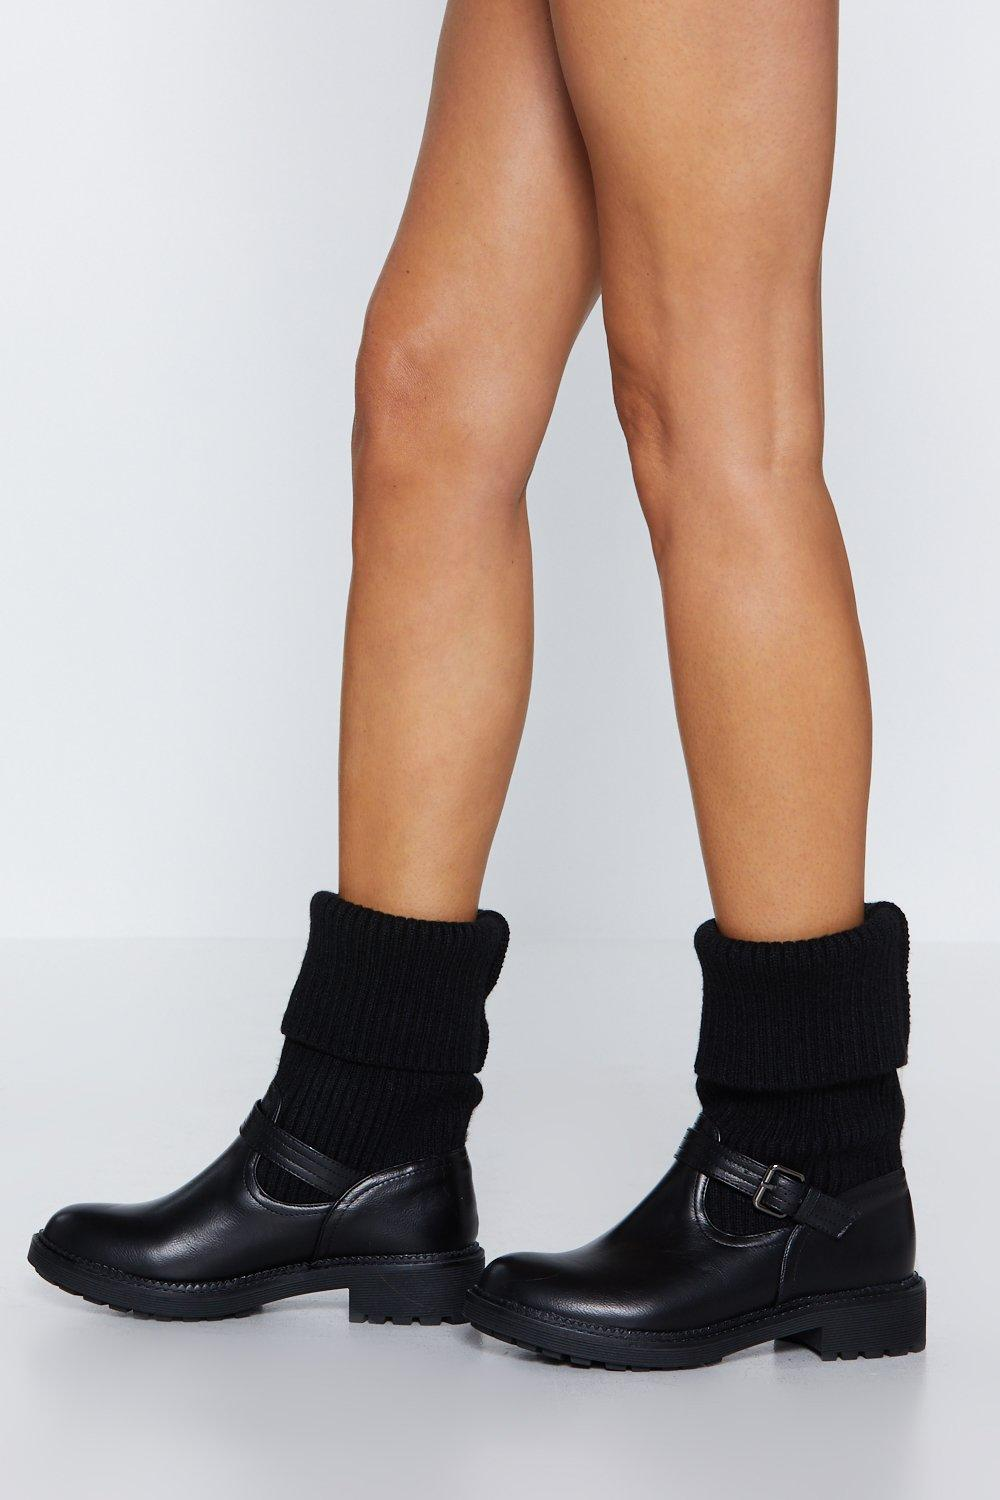 Truth Be Fold Knit Boot by Nasty Gal